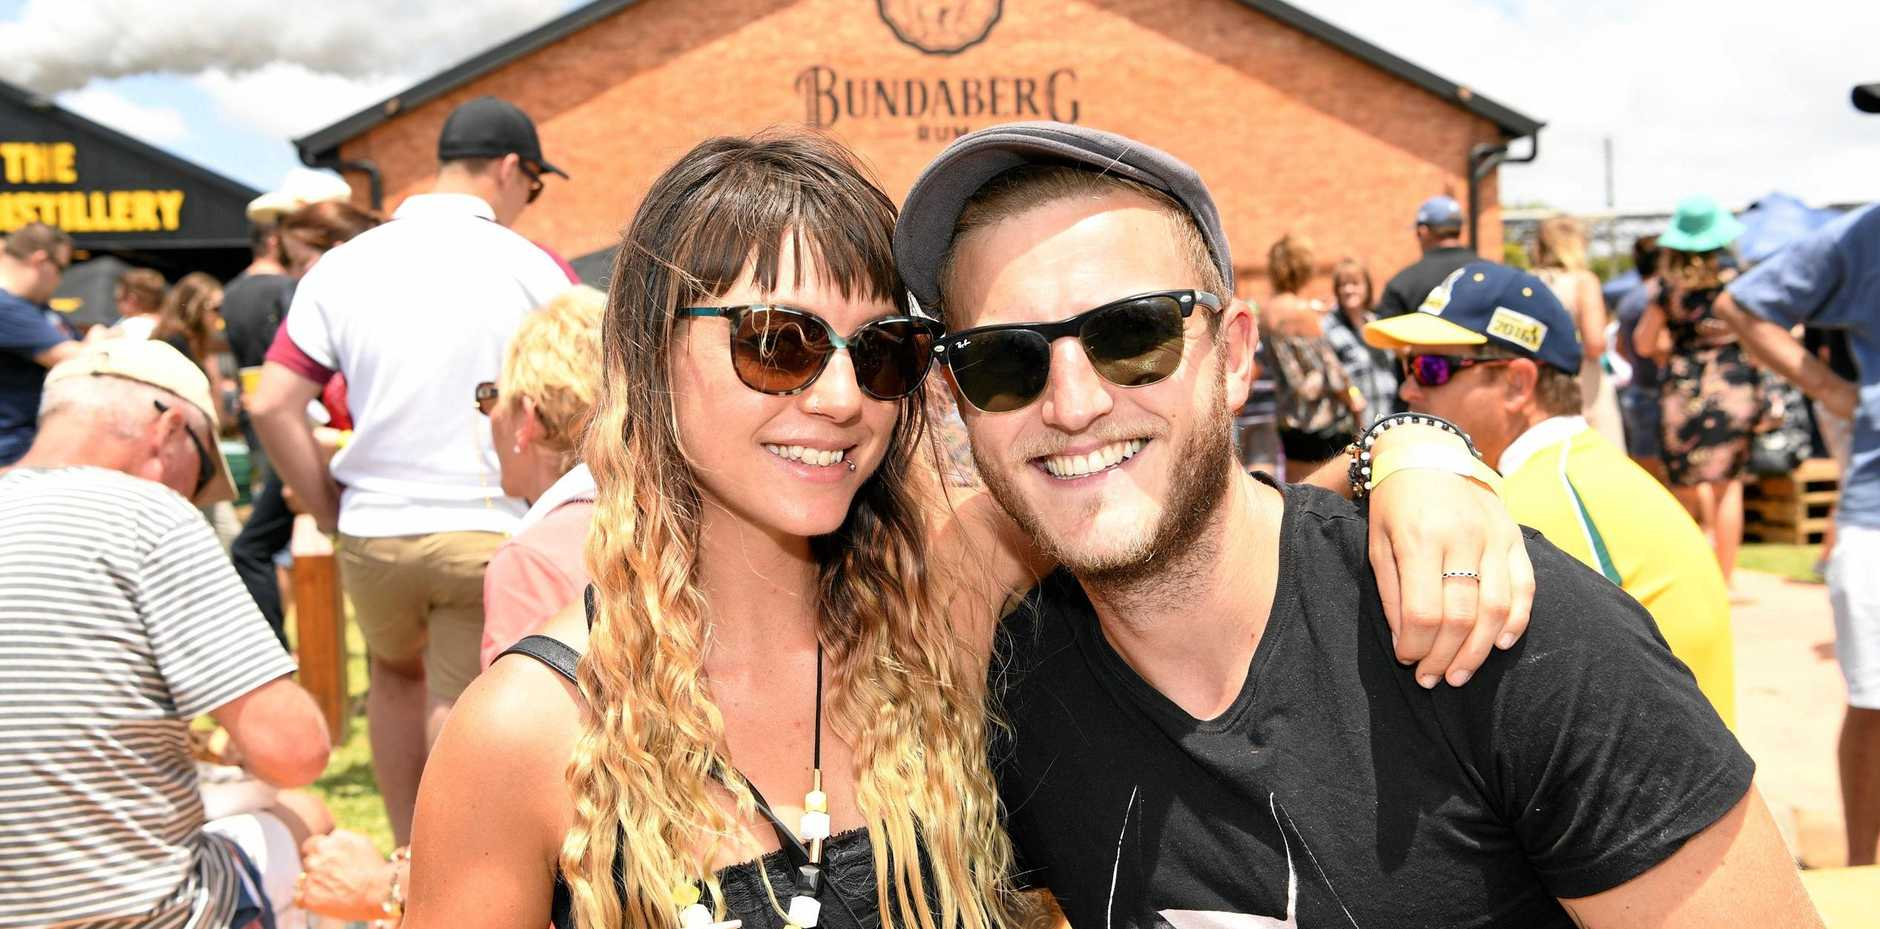 OVERSEAS VISITORS: Tamsin Pape and Richard Manning from the UK enjoy the Bundaberg Rum Festival.